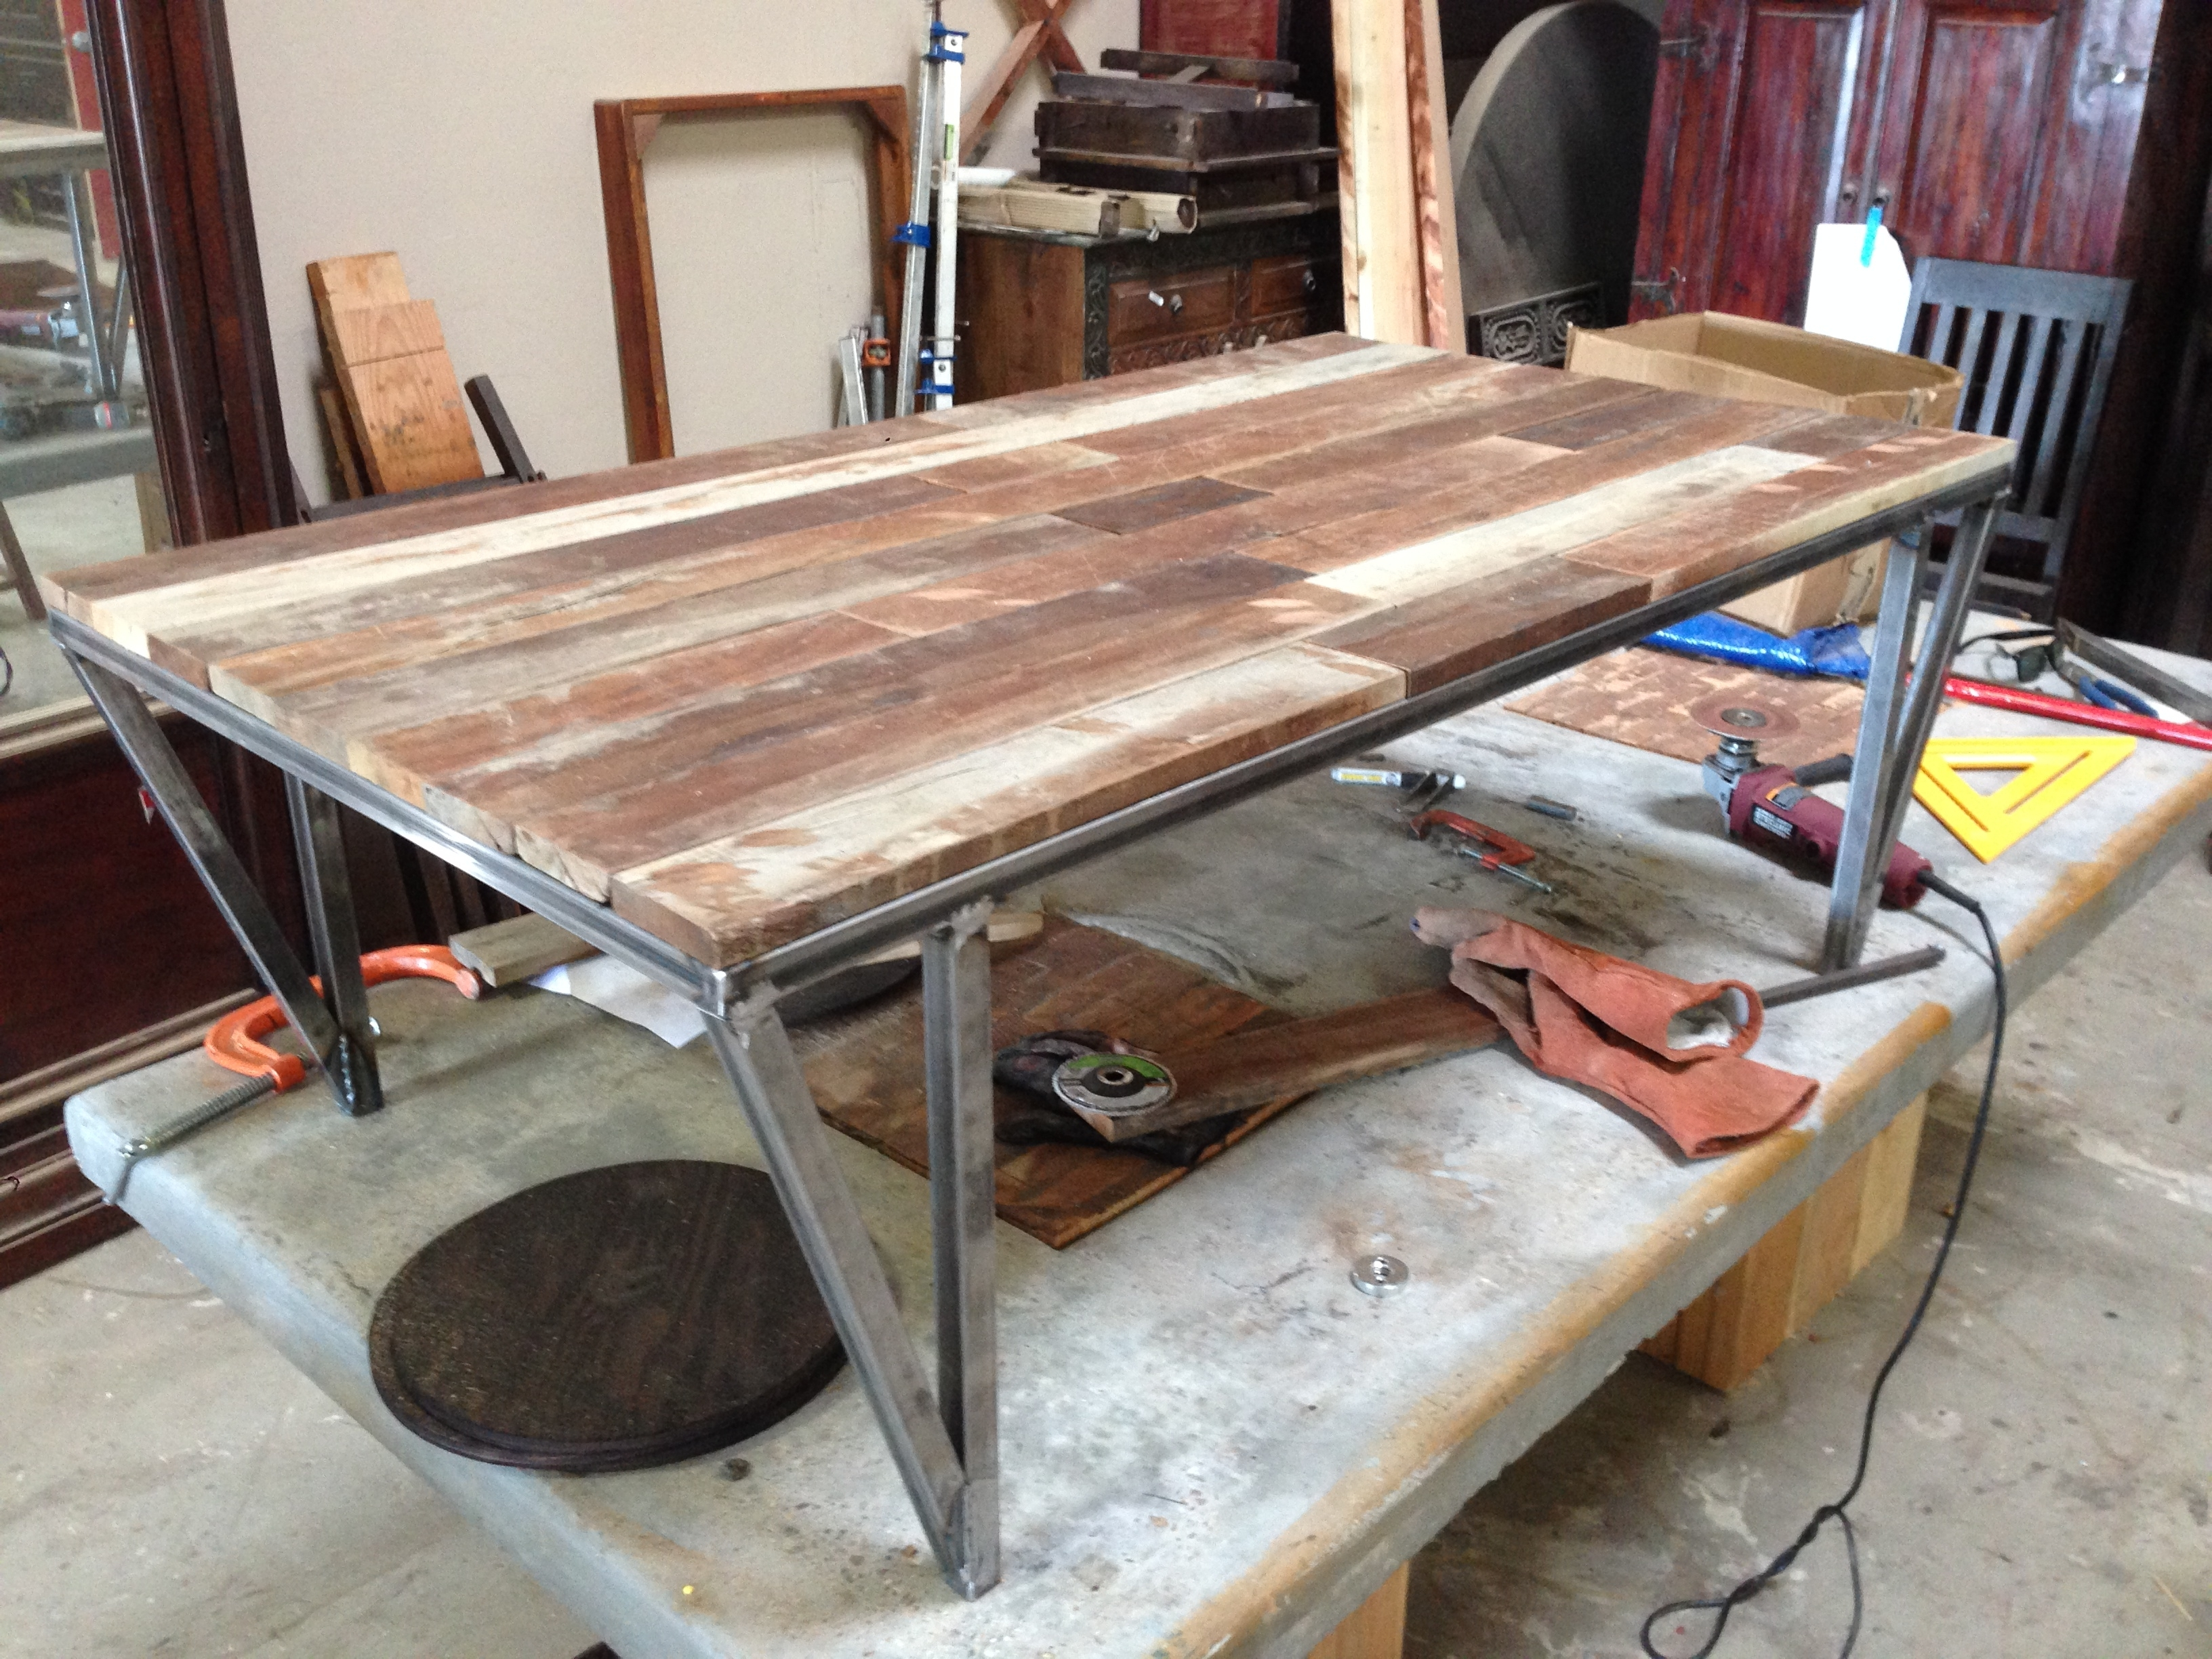 Custom Metal And Wood Furniture At San Diego Rustic Furniture – Made In Newest Iron Wood Coffee Tables With Wheels (View 13 of 20)